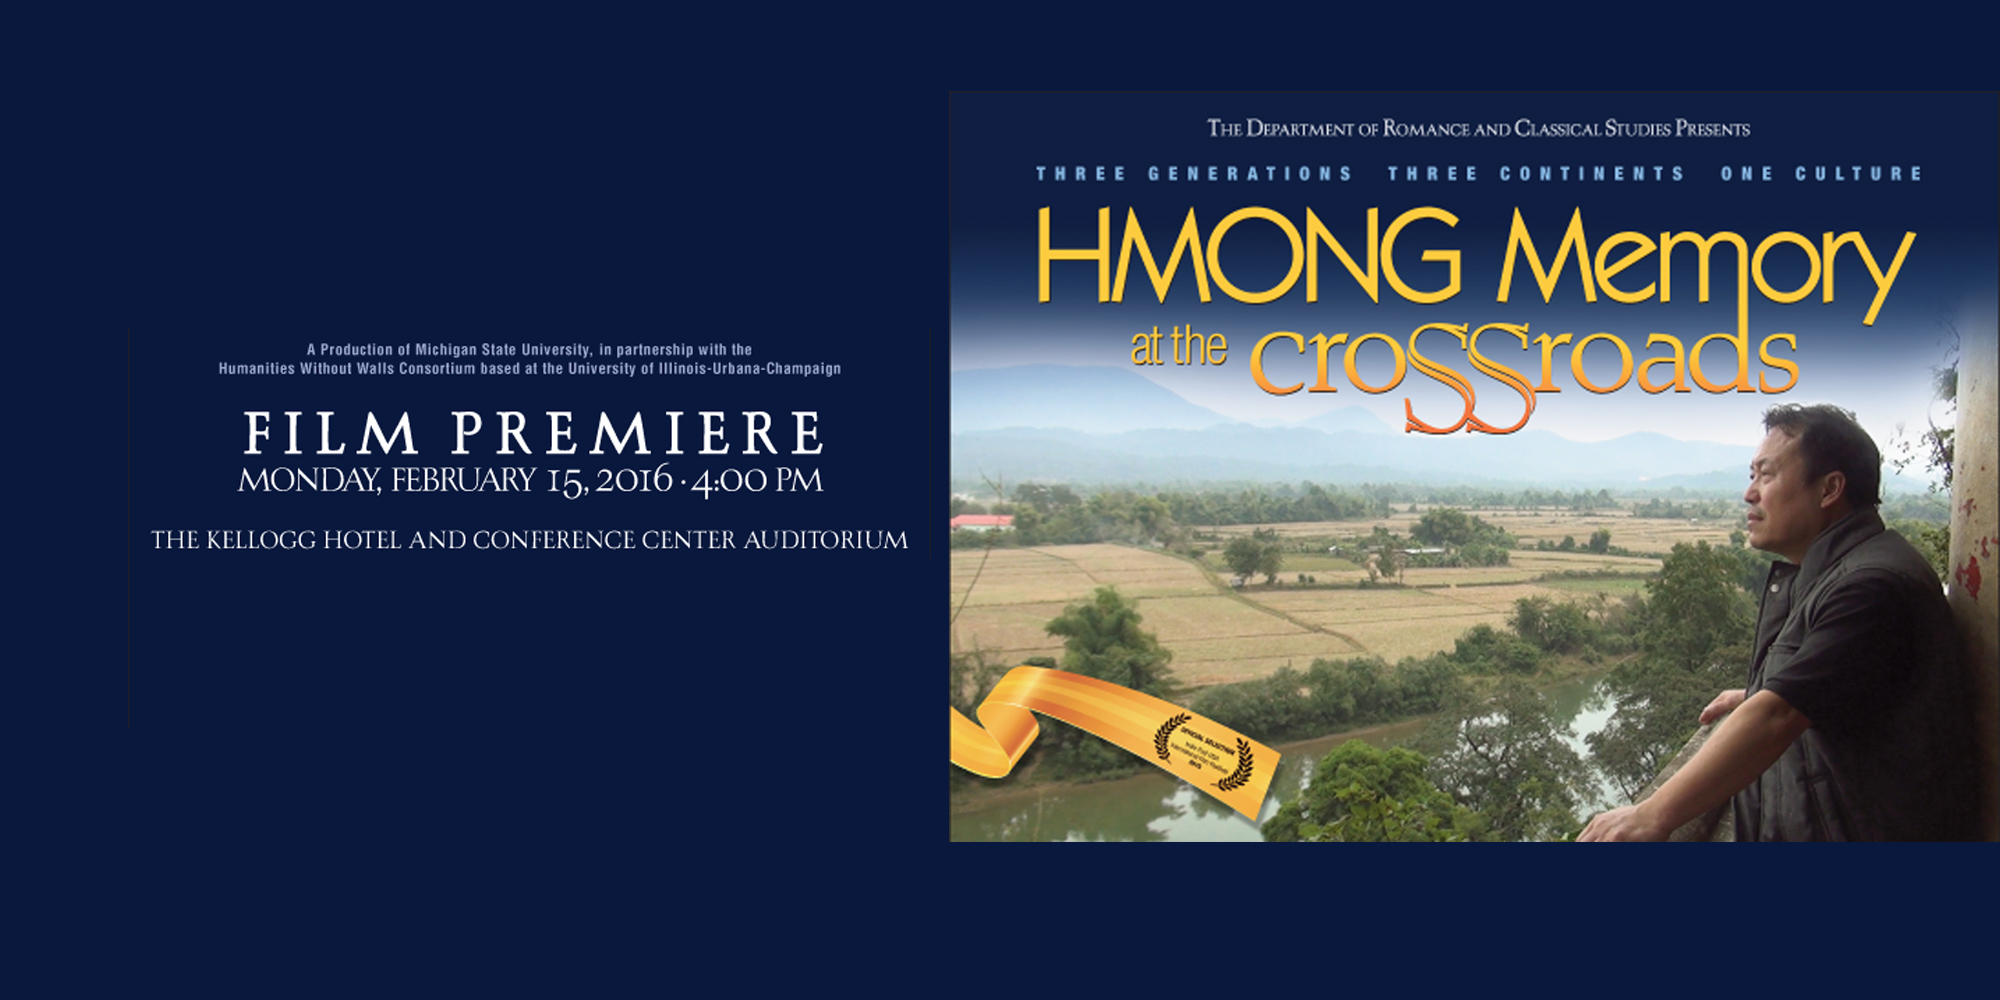 'Hmong Memory at the Crossroads' Film Premiere